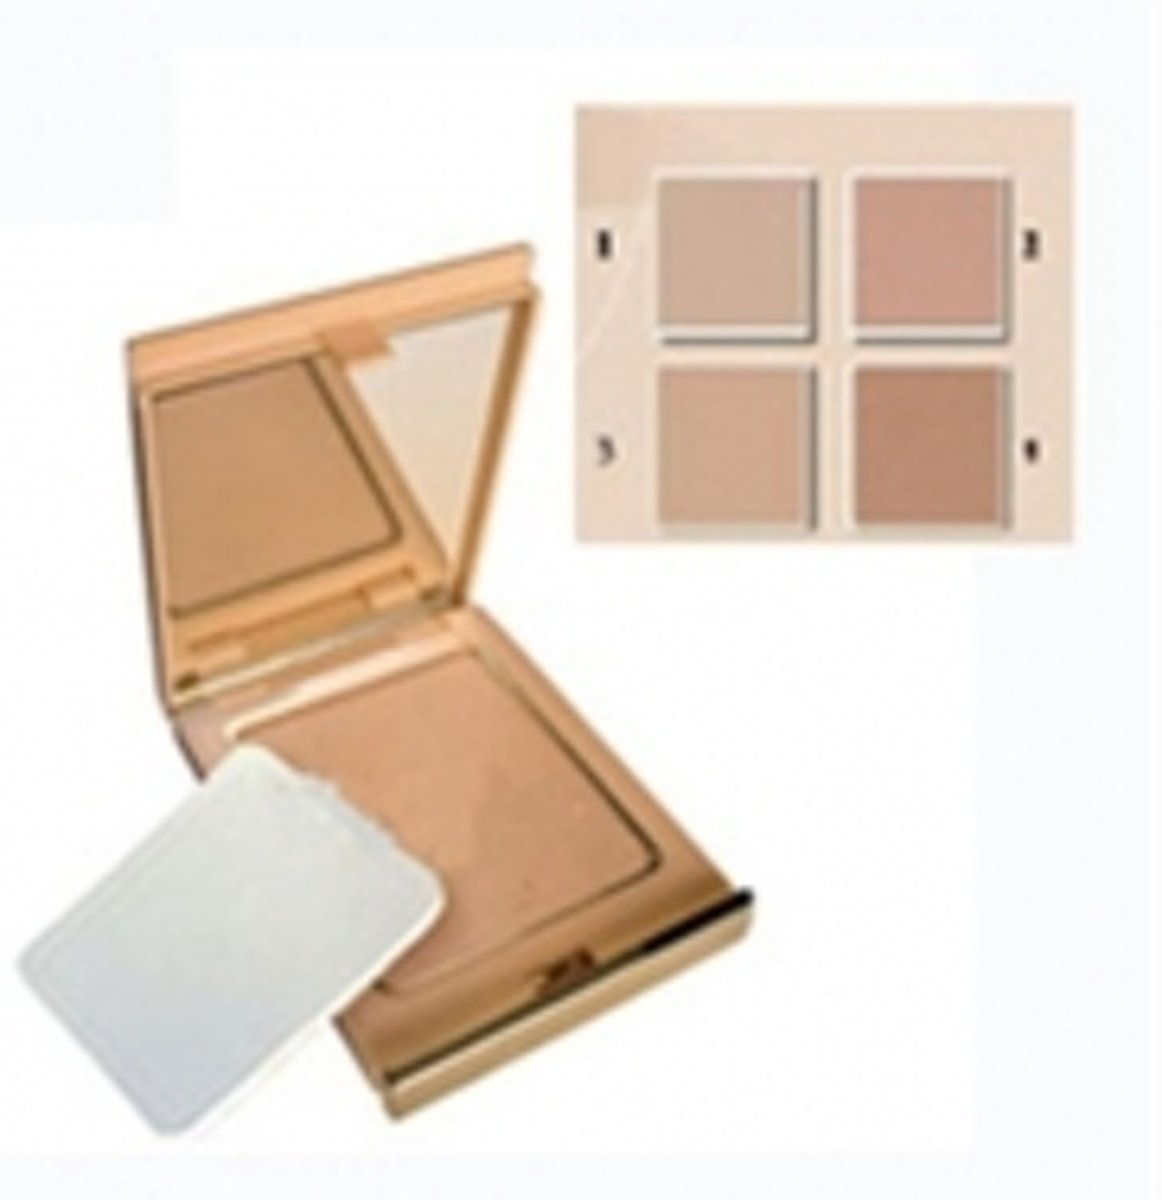 Coverderm - Compact Powder waterproof - 1 Normal skin